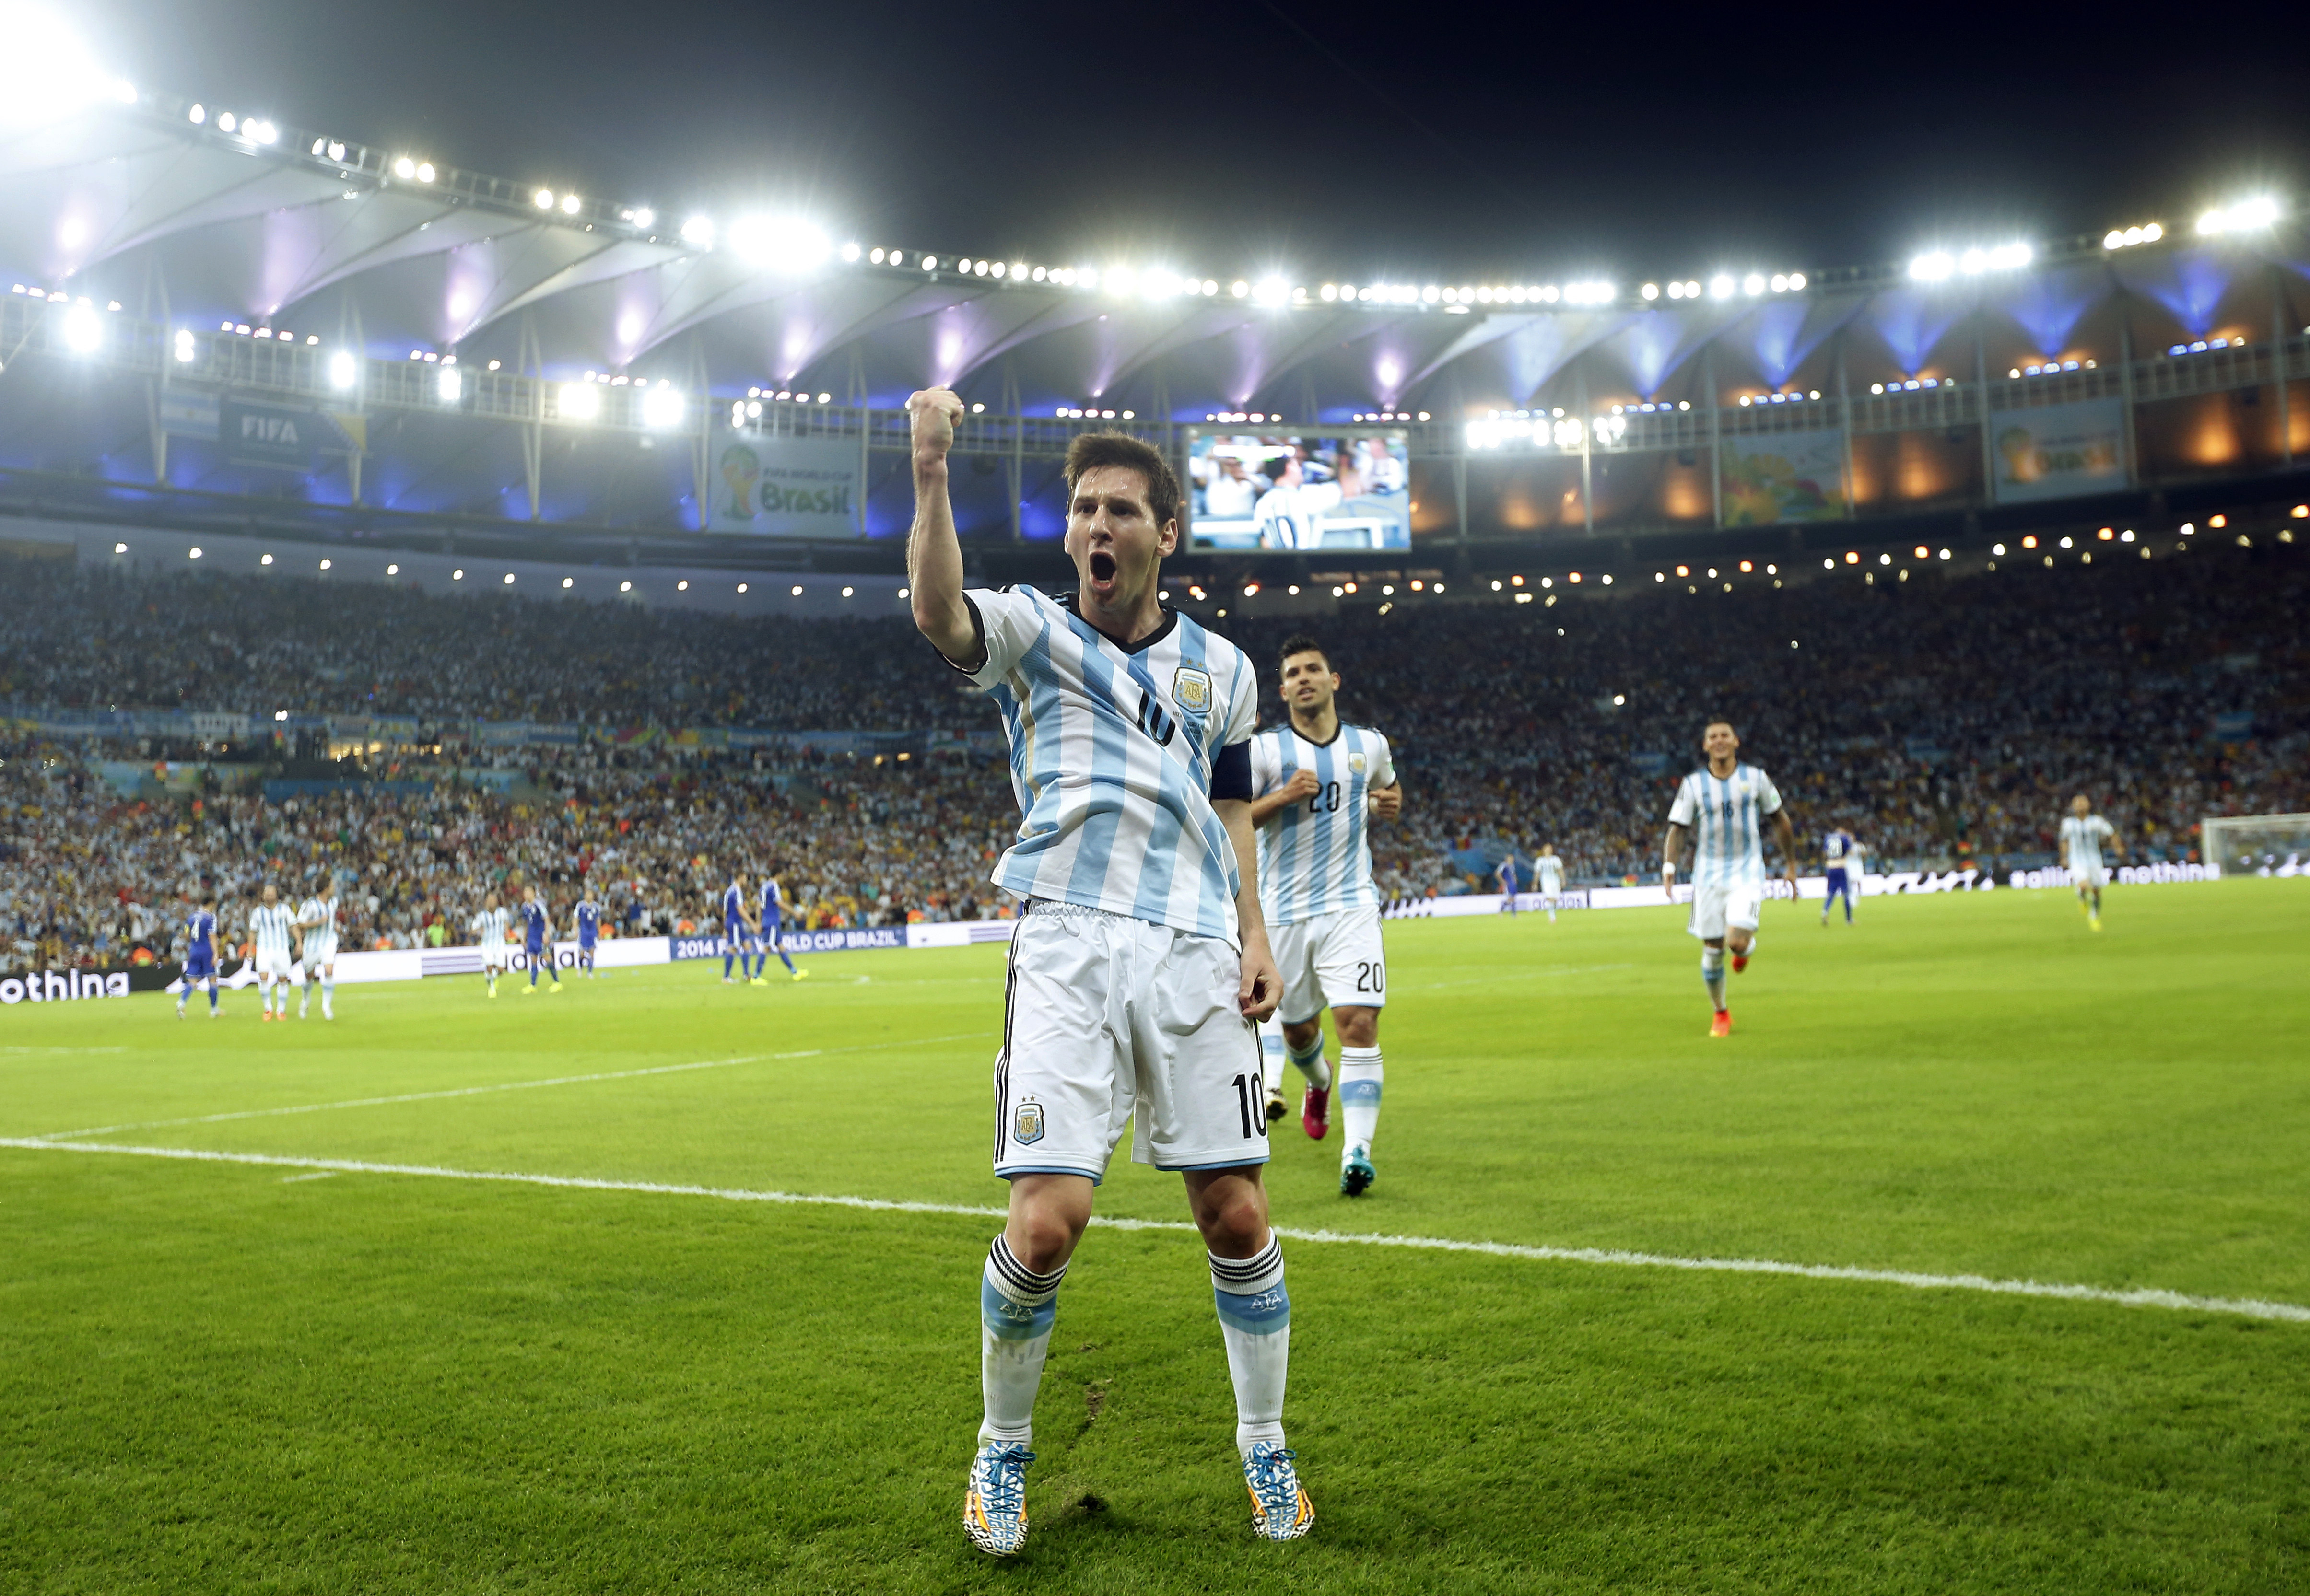 Messi ends WC goal drought; French, Swiss win too – The ...